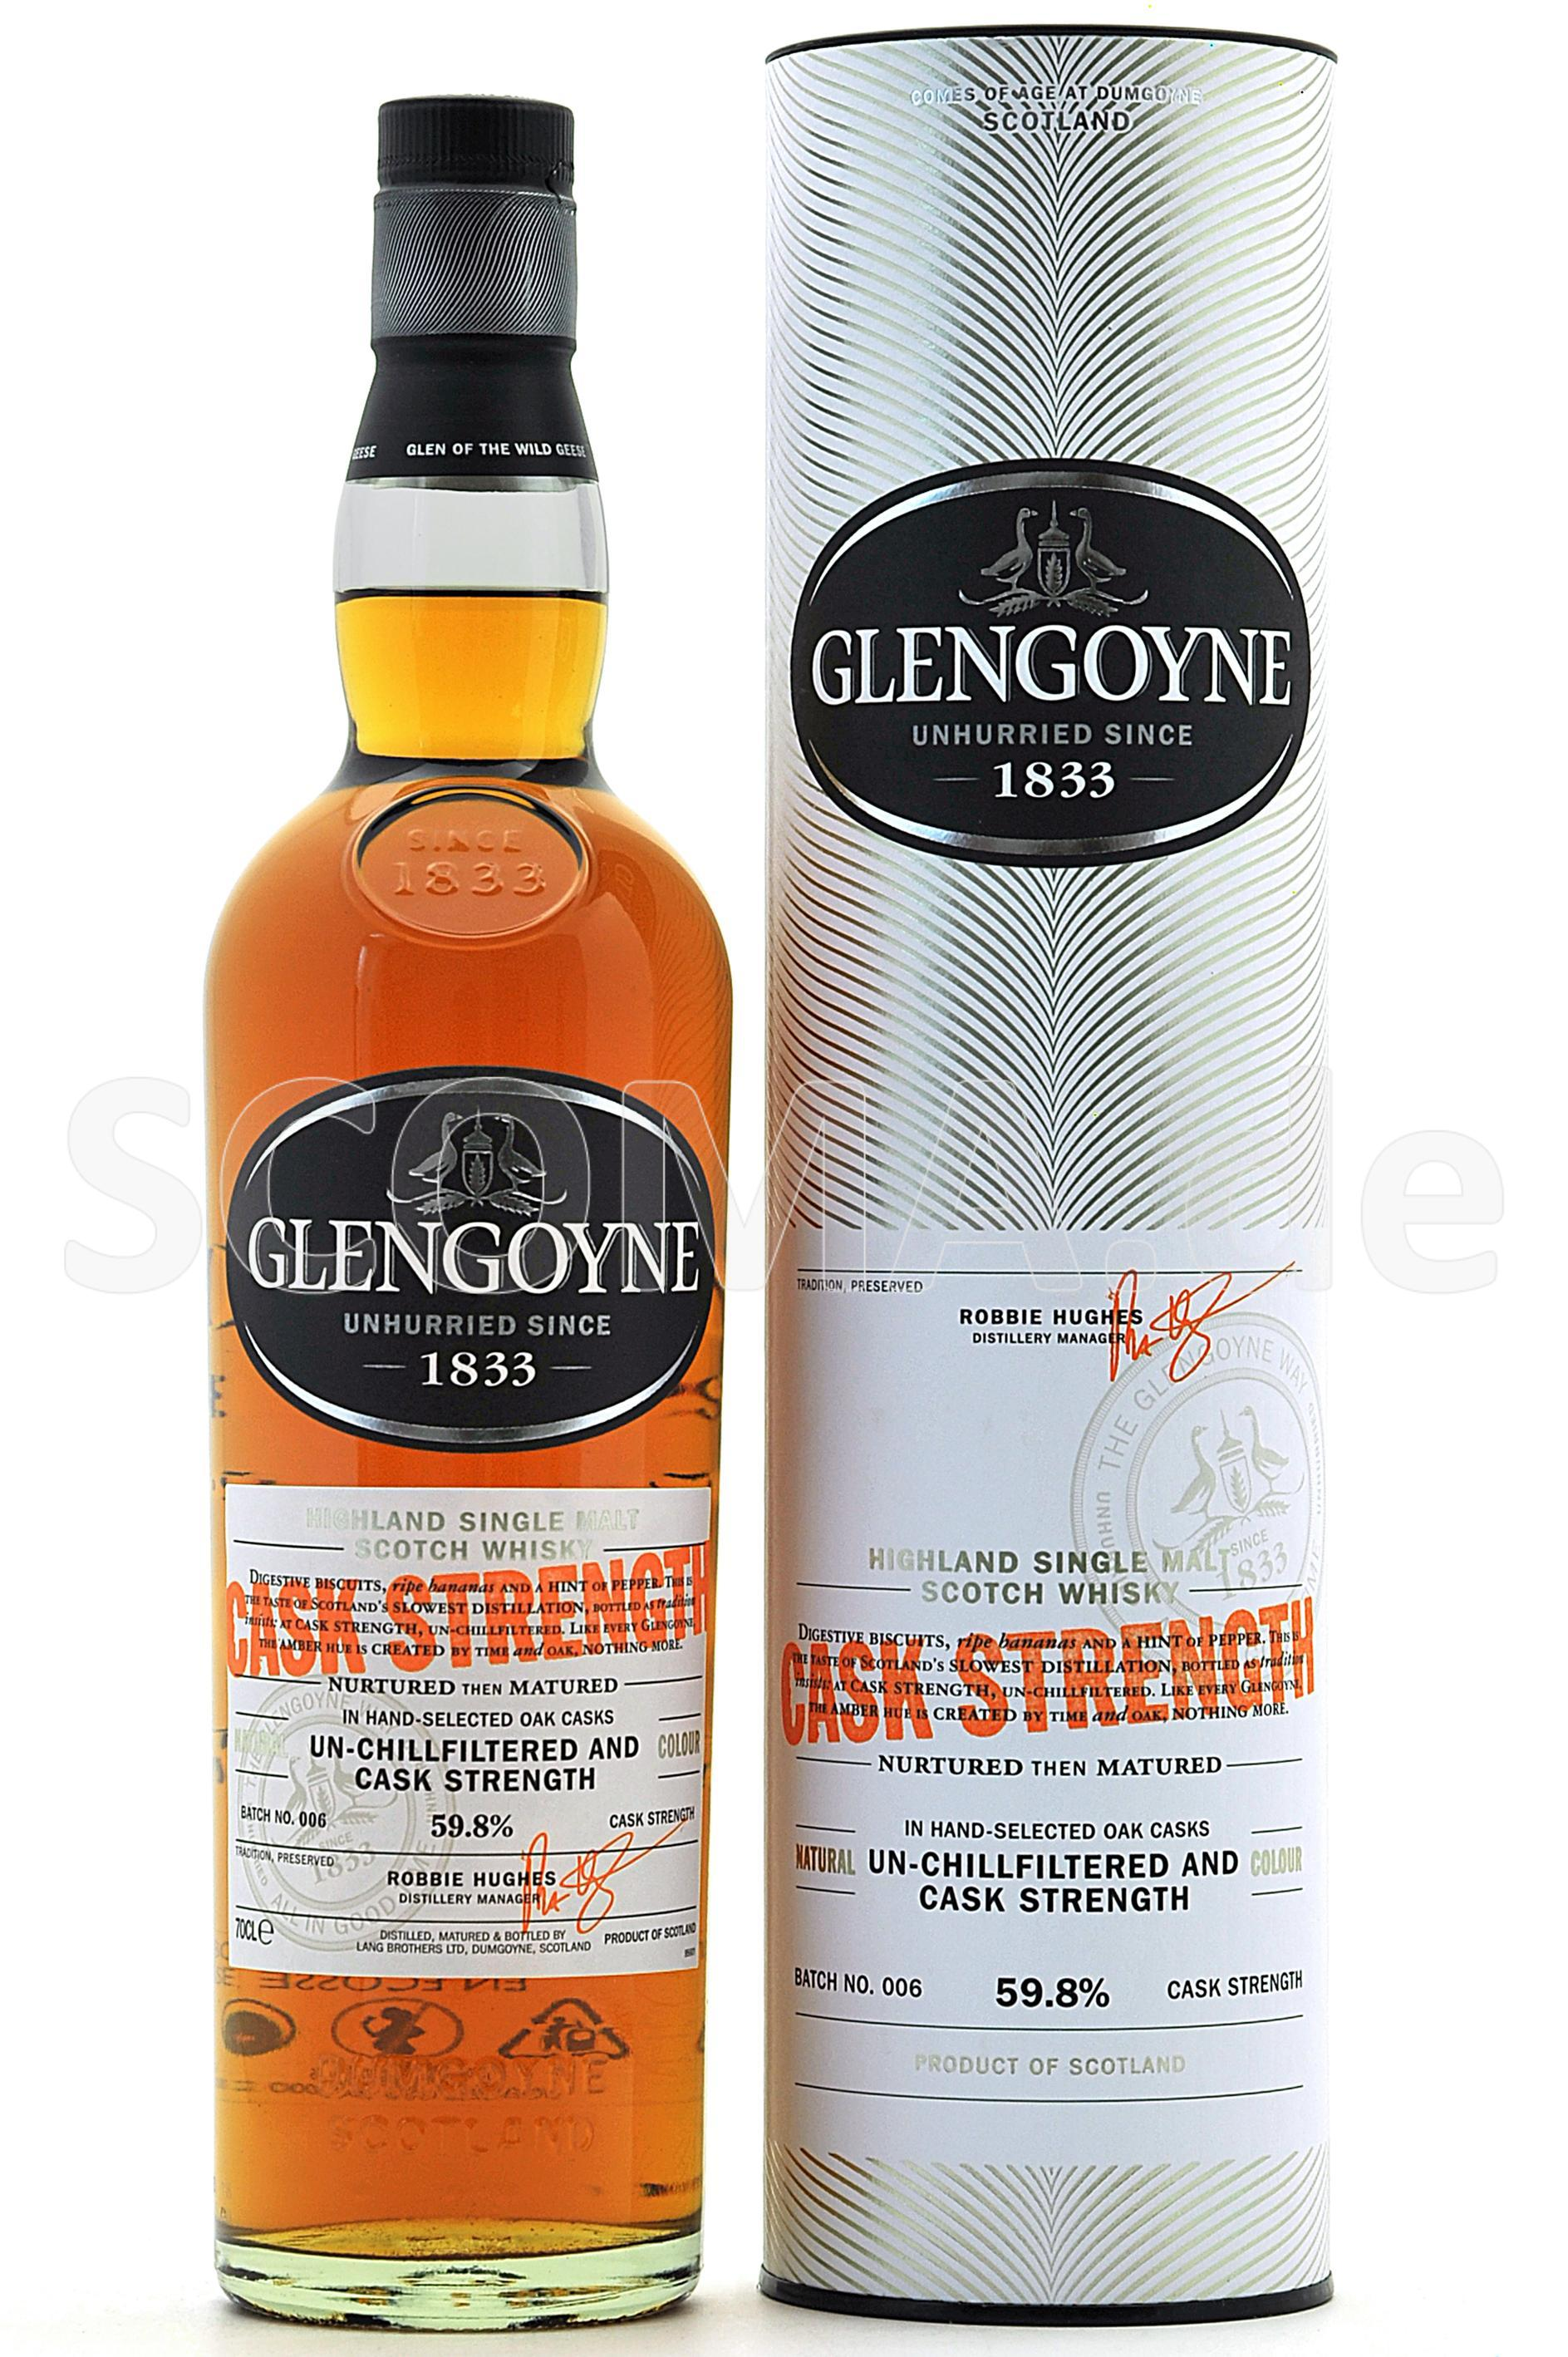 Glengoyne Cask strength B0006